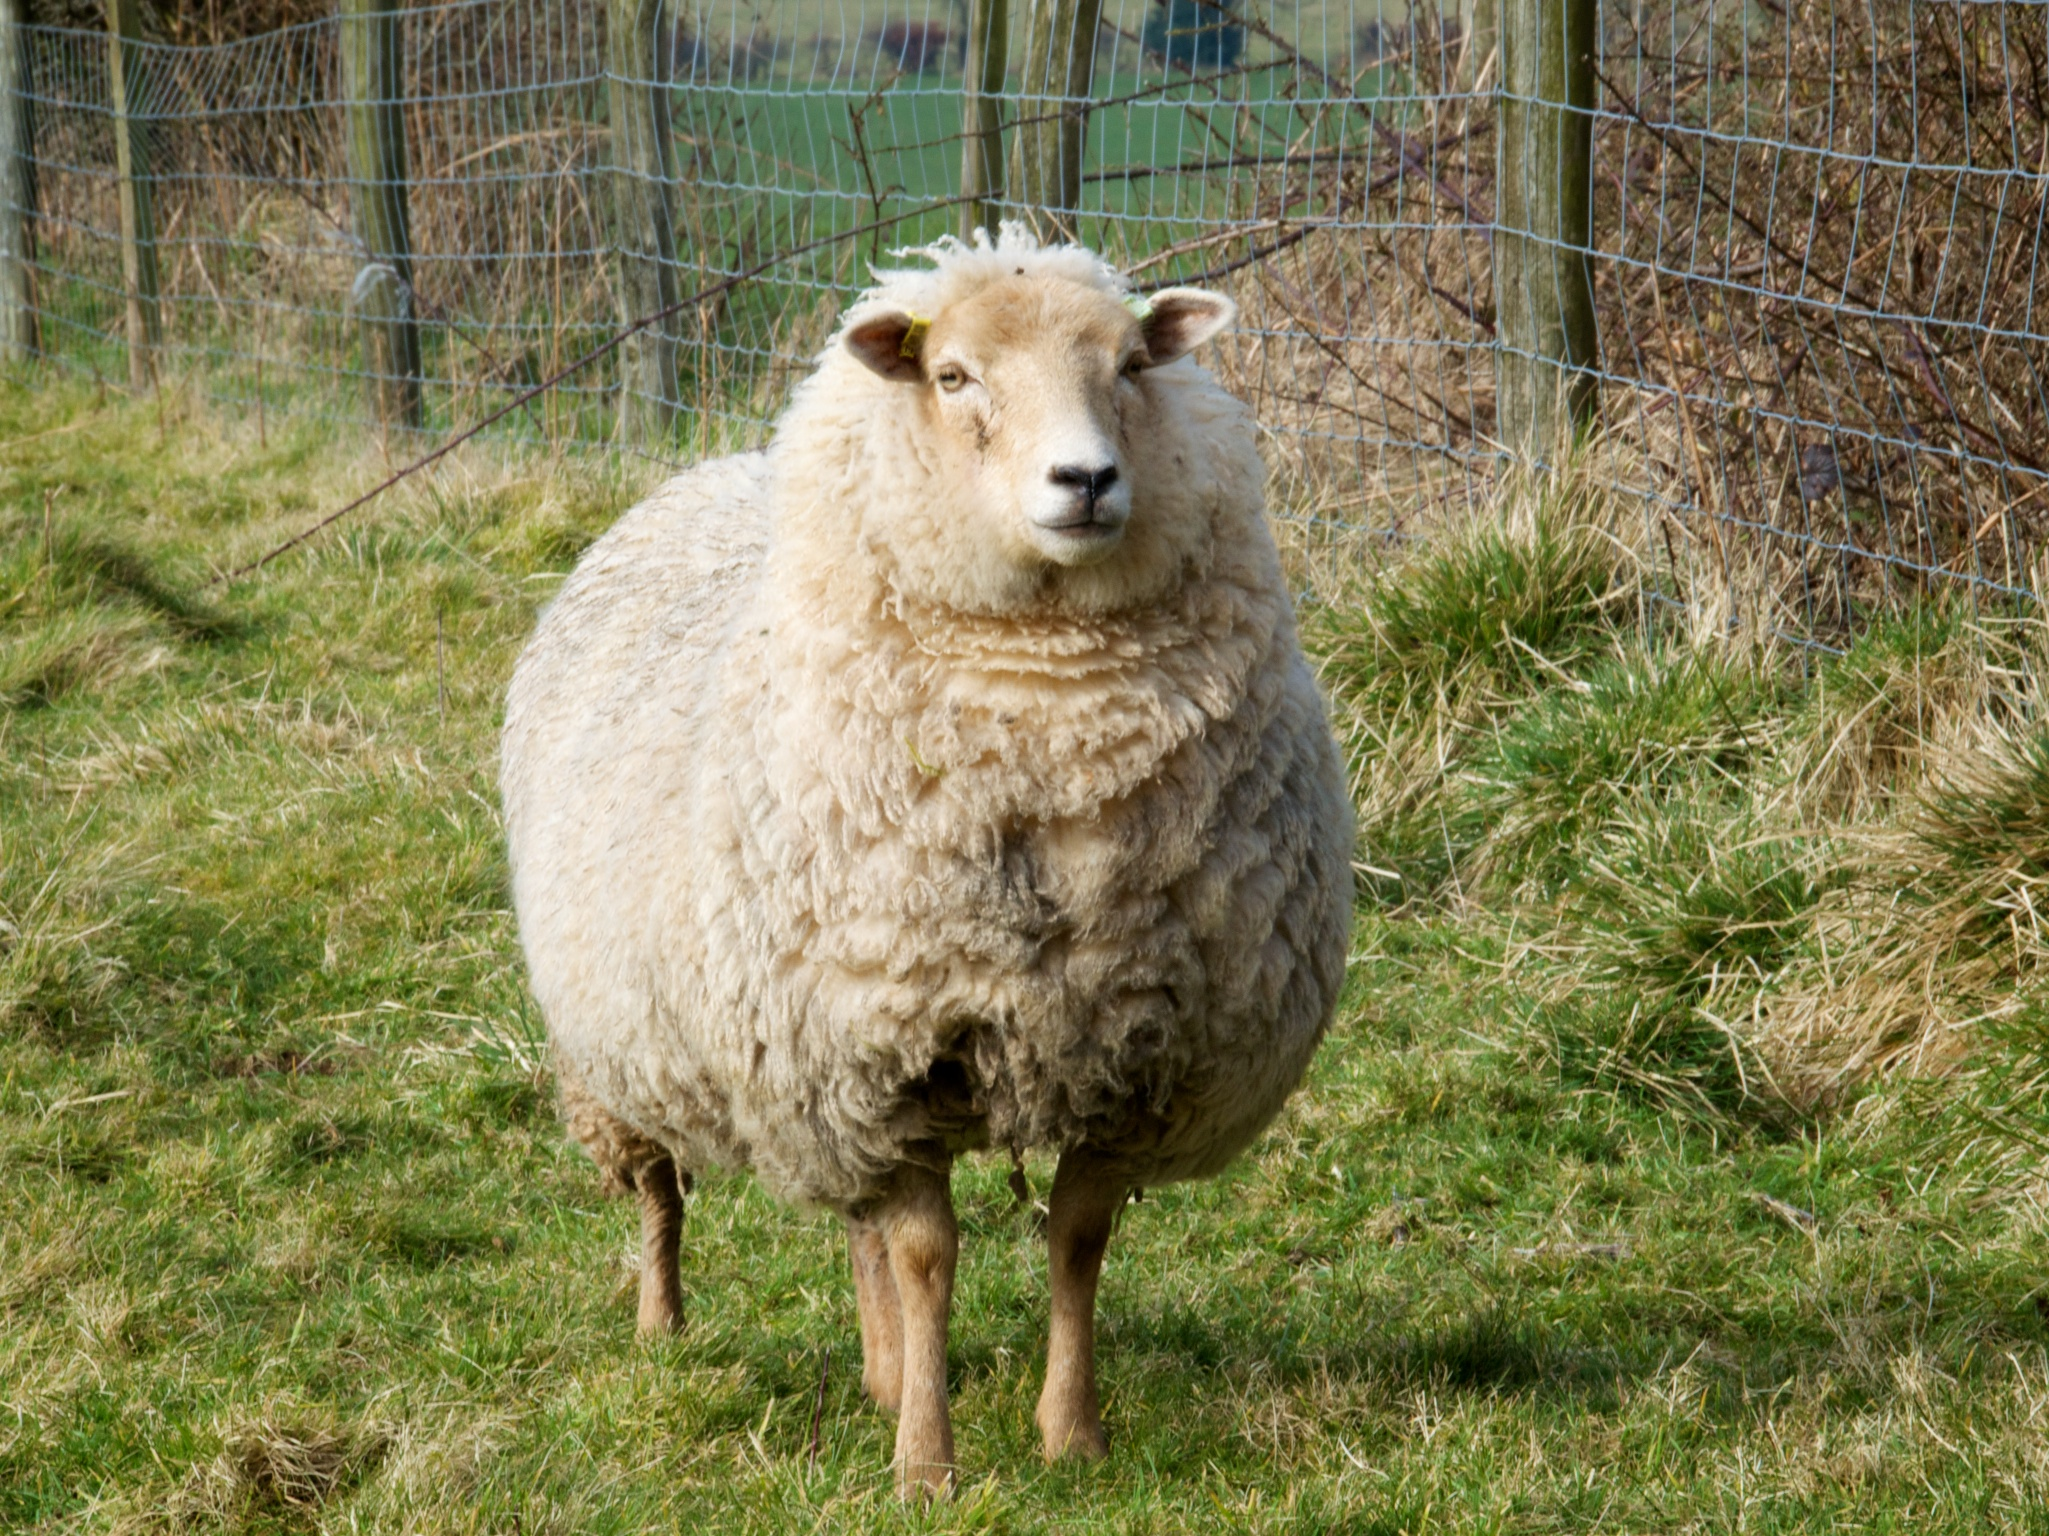 Fernhill Farm Full Wool Sheep 035.jpg